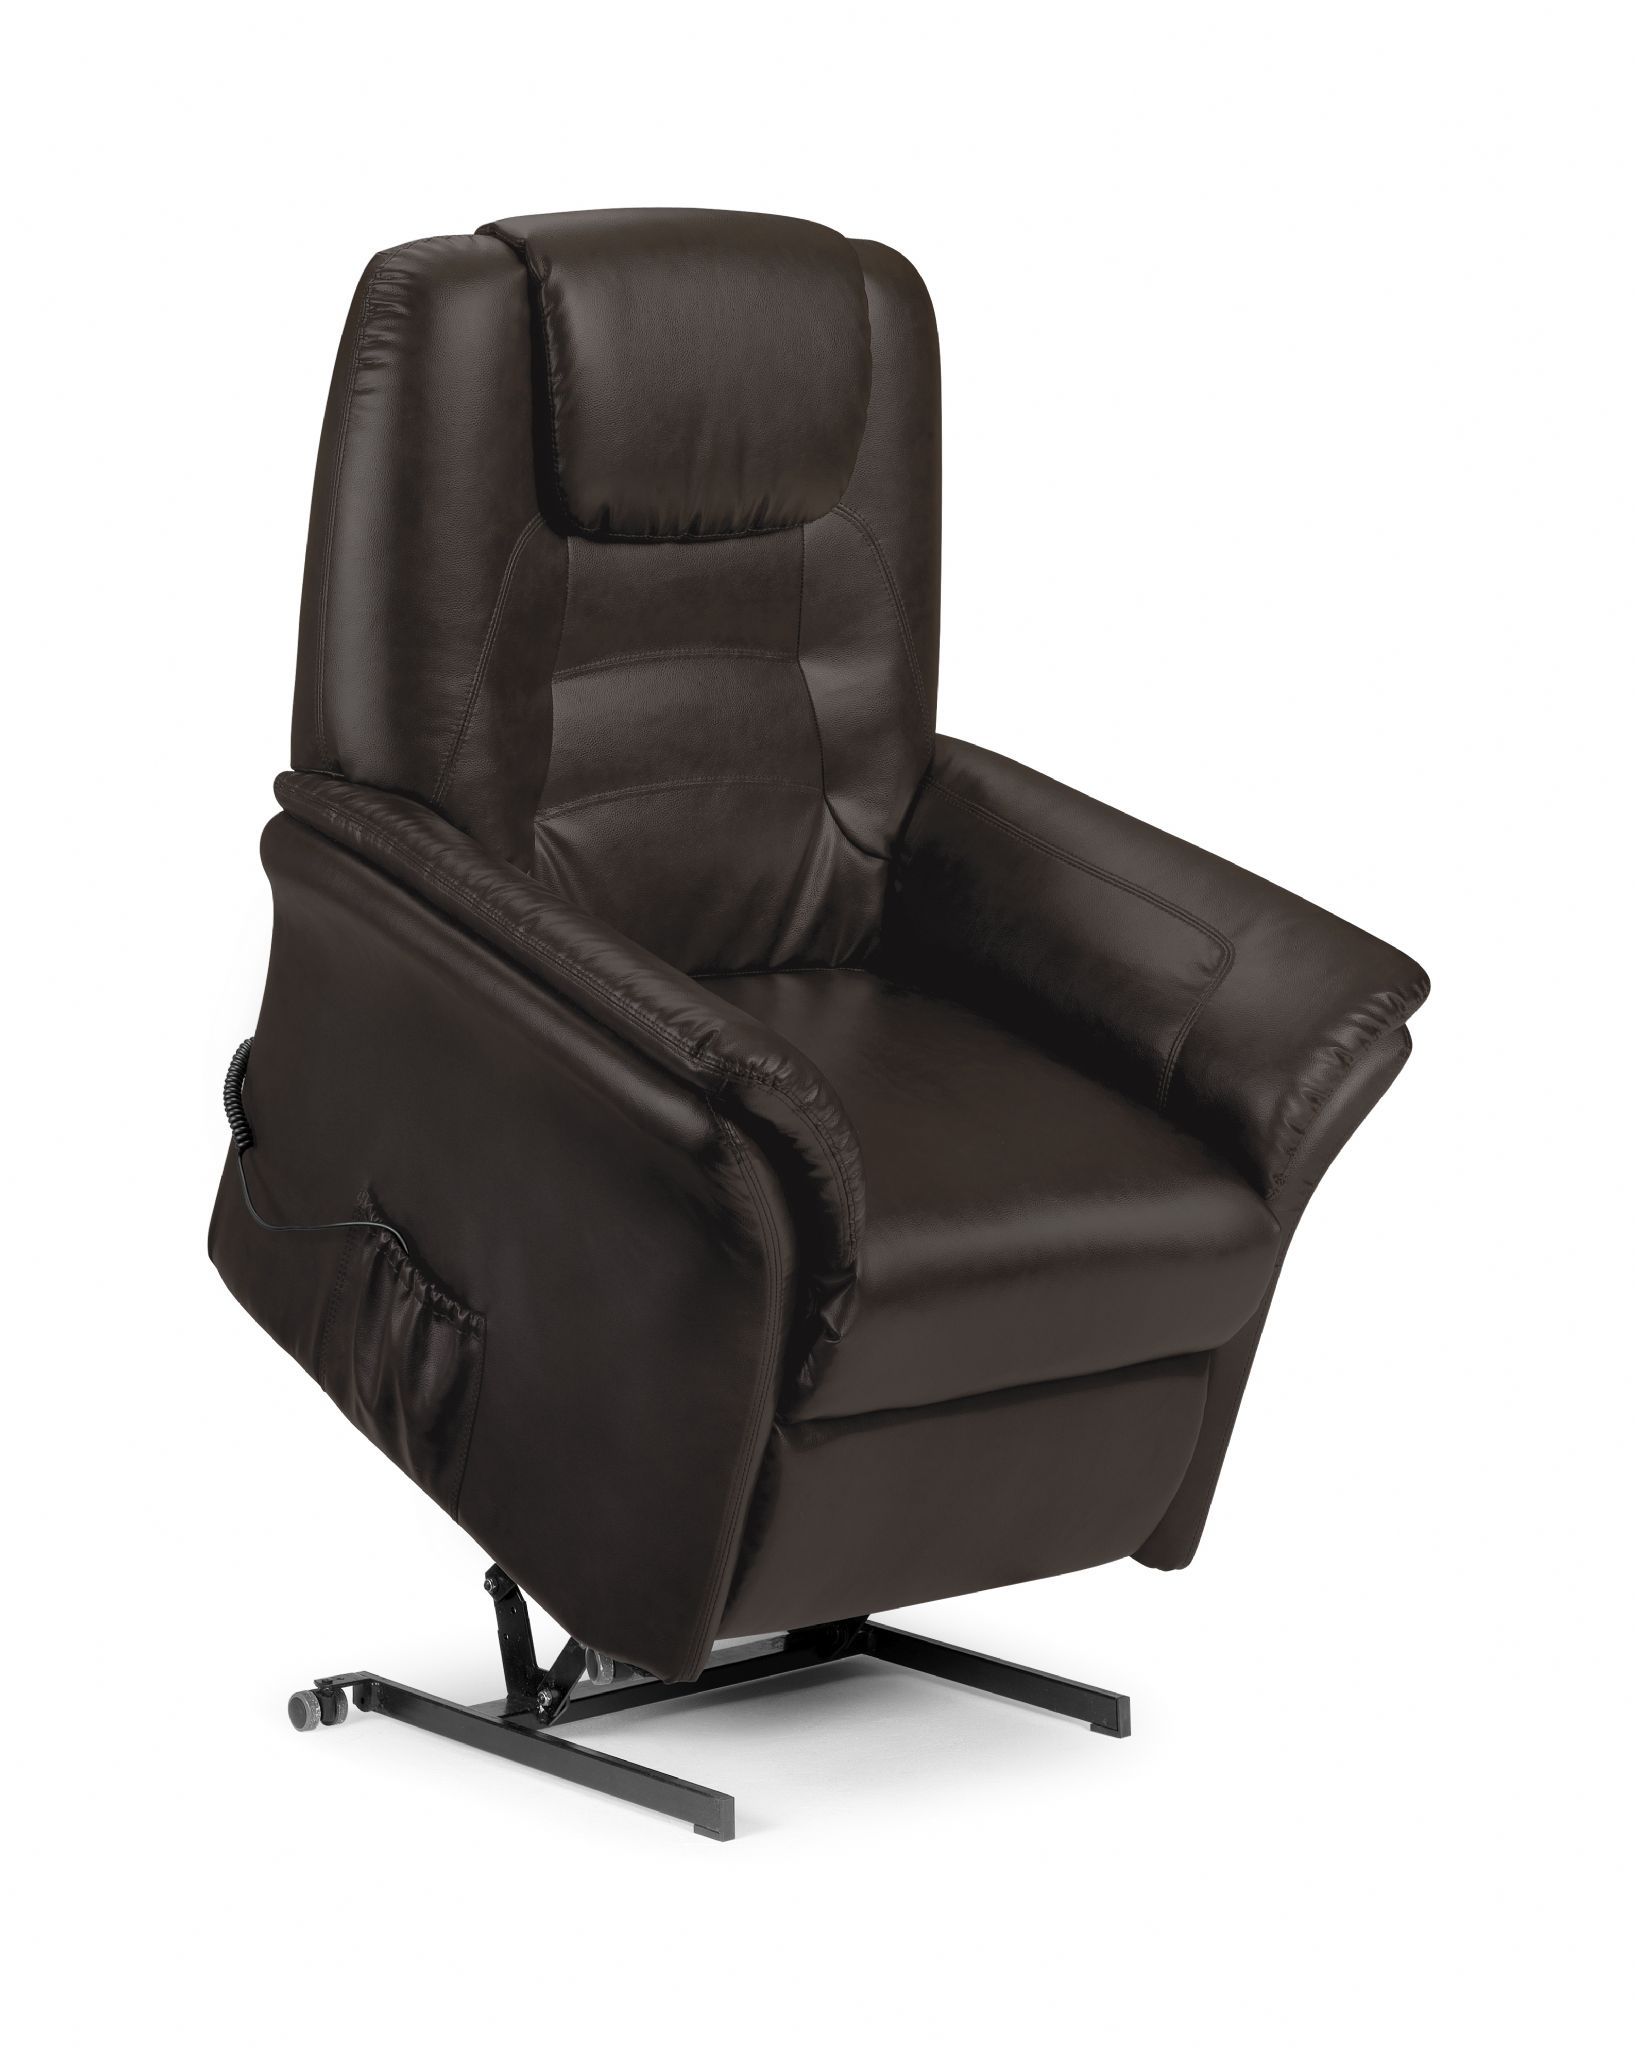 faux leather recliner chair unusual modern montesilvano brown rise and recline jb460